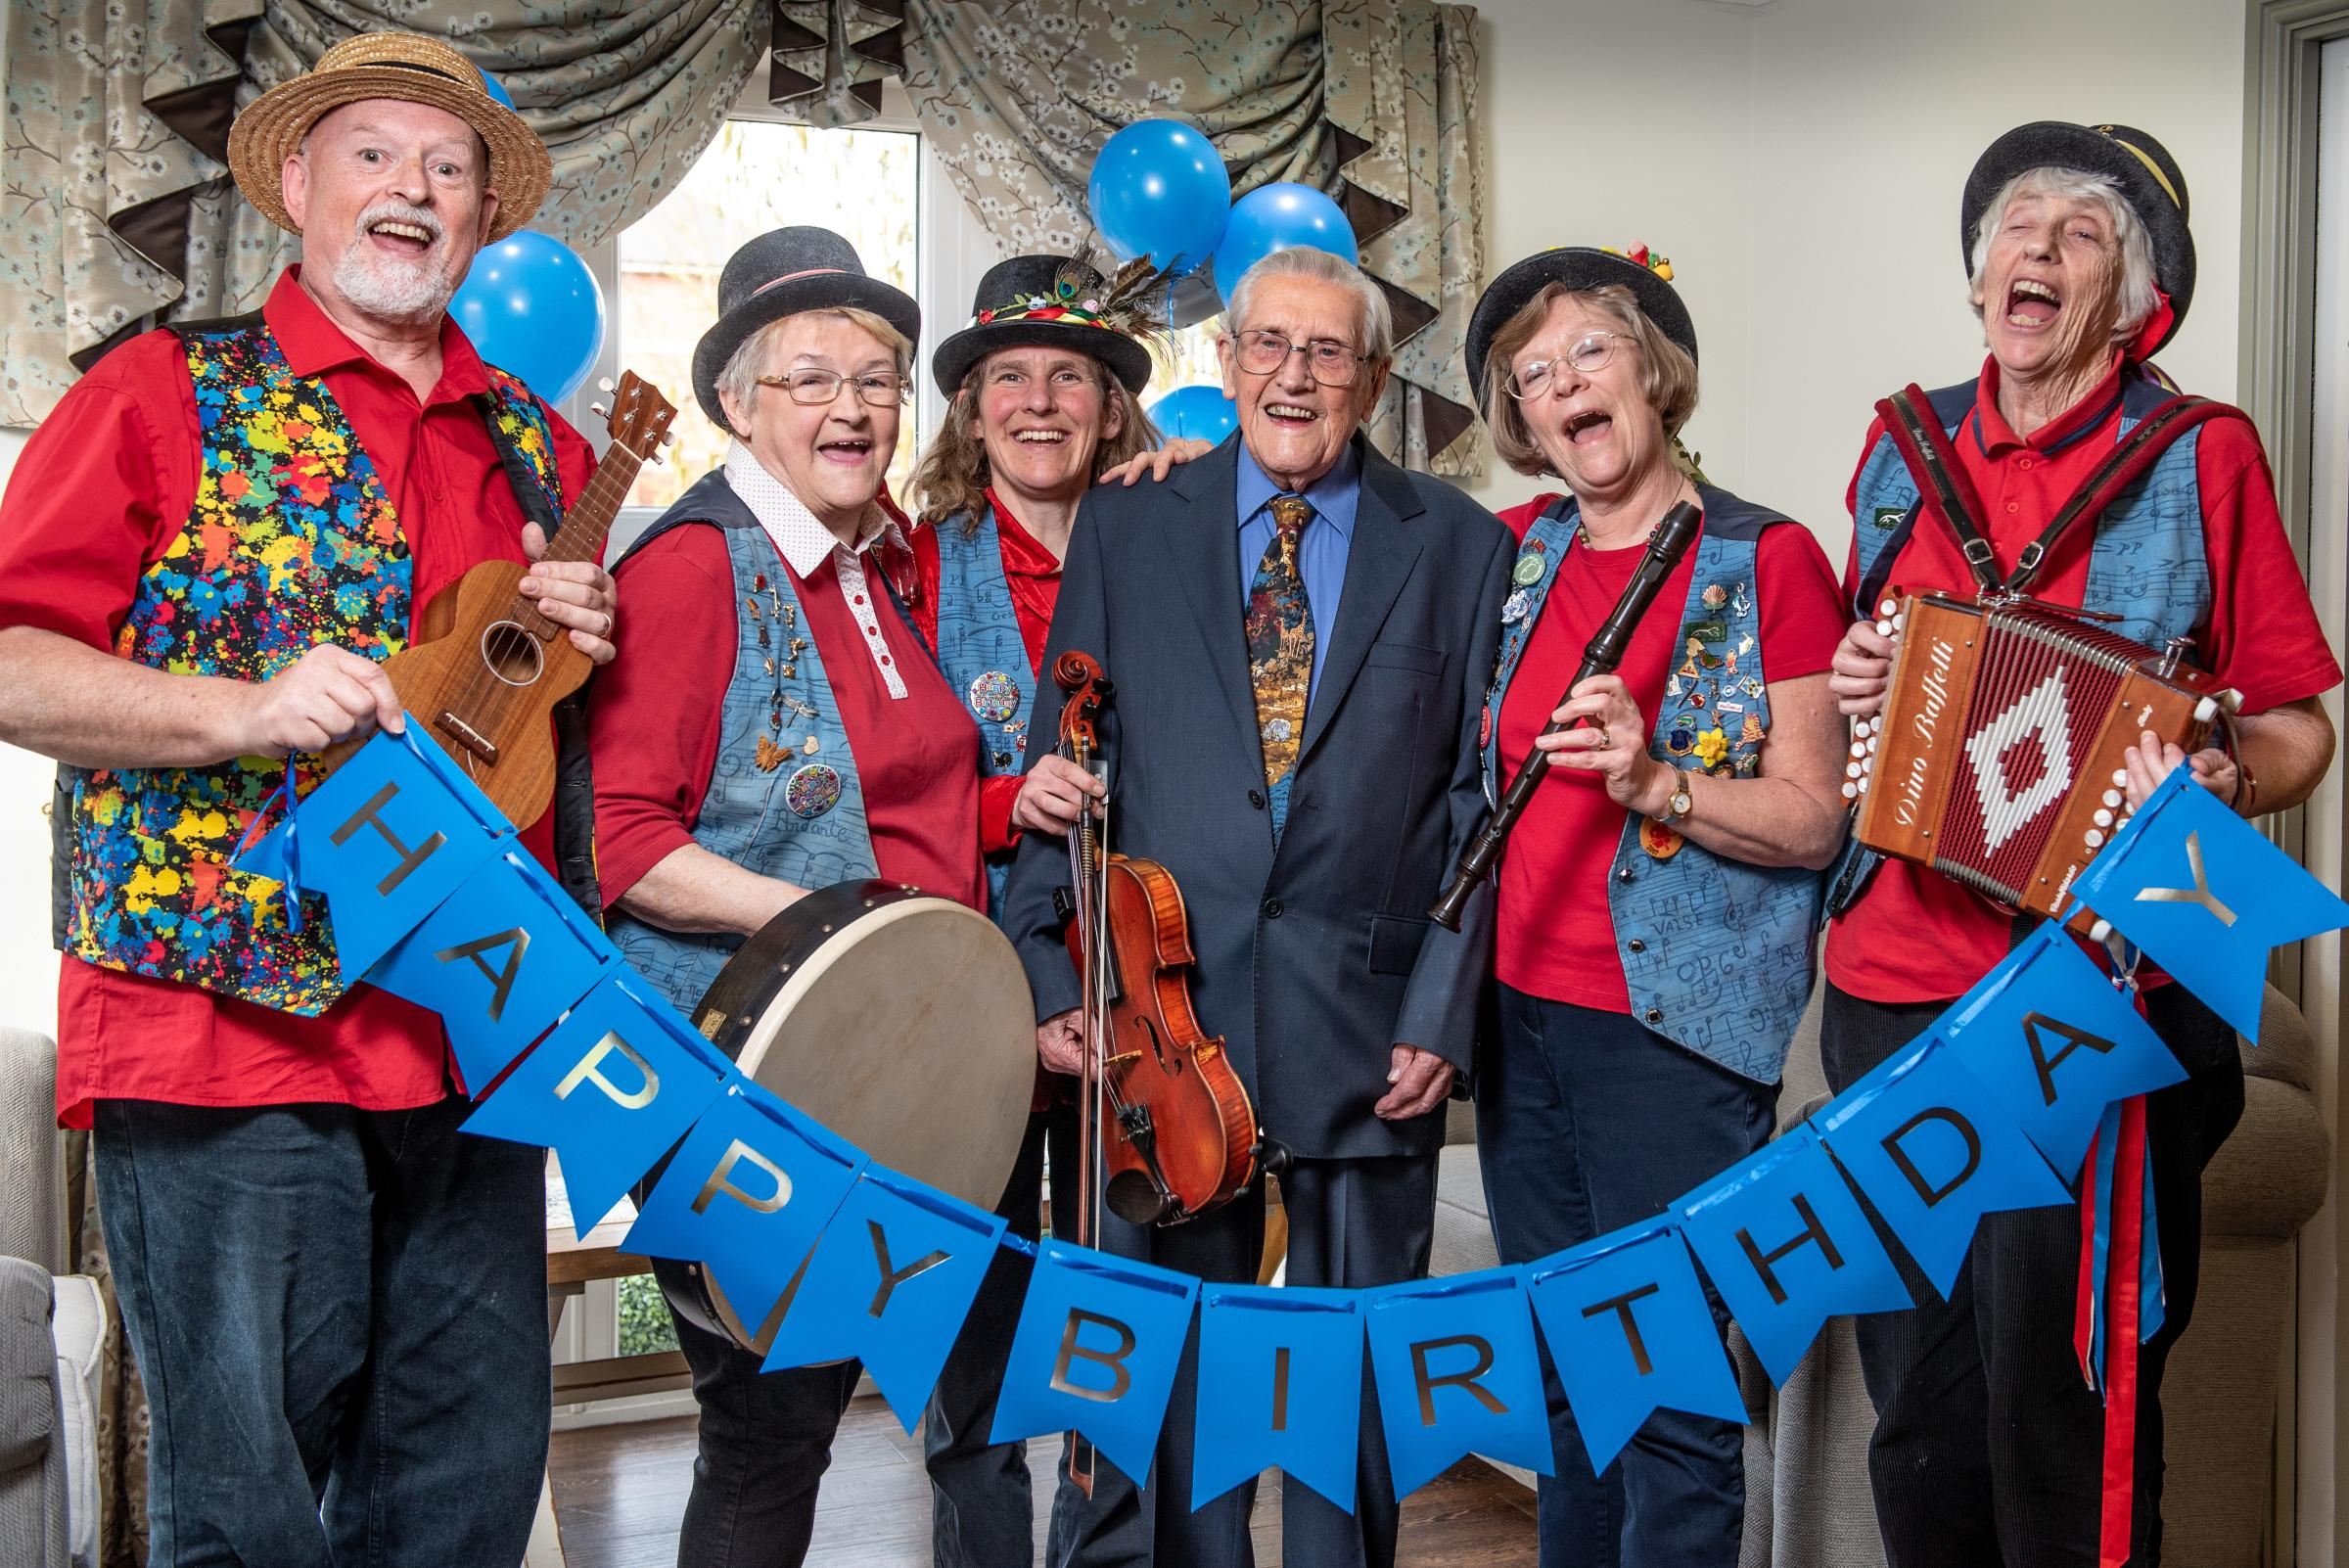 Abingdon resident, Ron Frampton, celebrating his 102nd birthday with local band Pandemonium. Pictured at Bridge House. Abingdon.